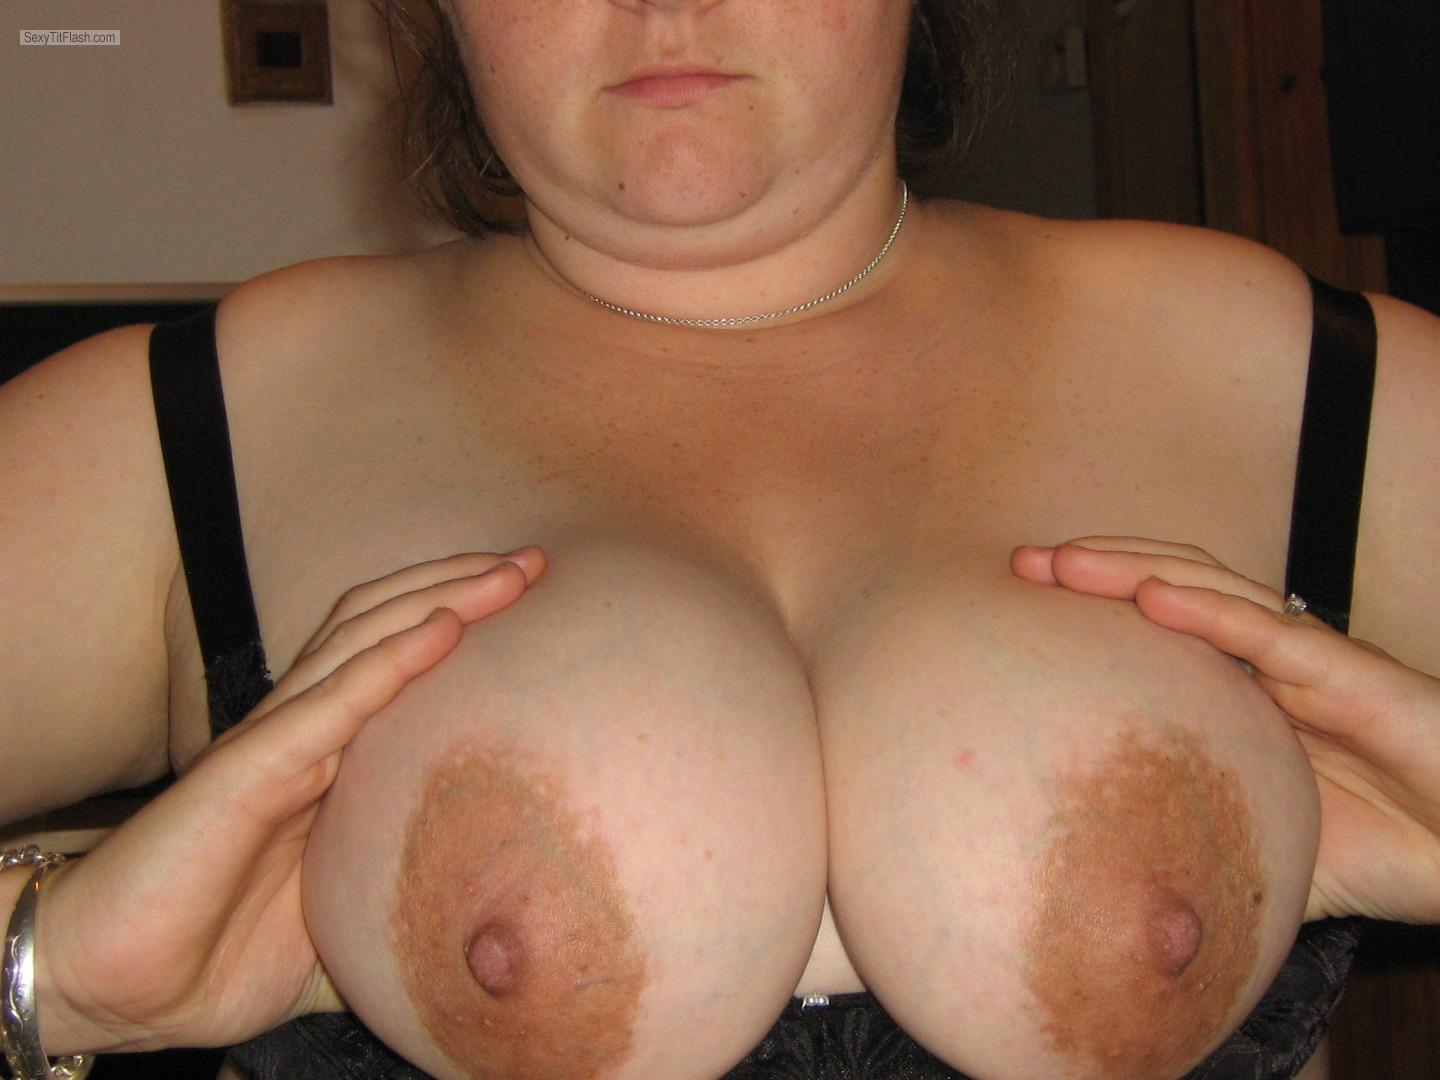 Tit Flash: Wife's Very Big Tits - Lisa from United Kingdom